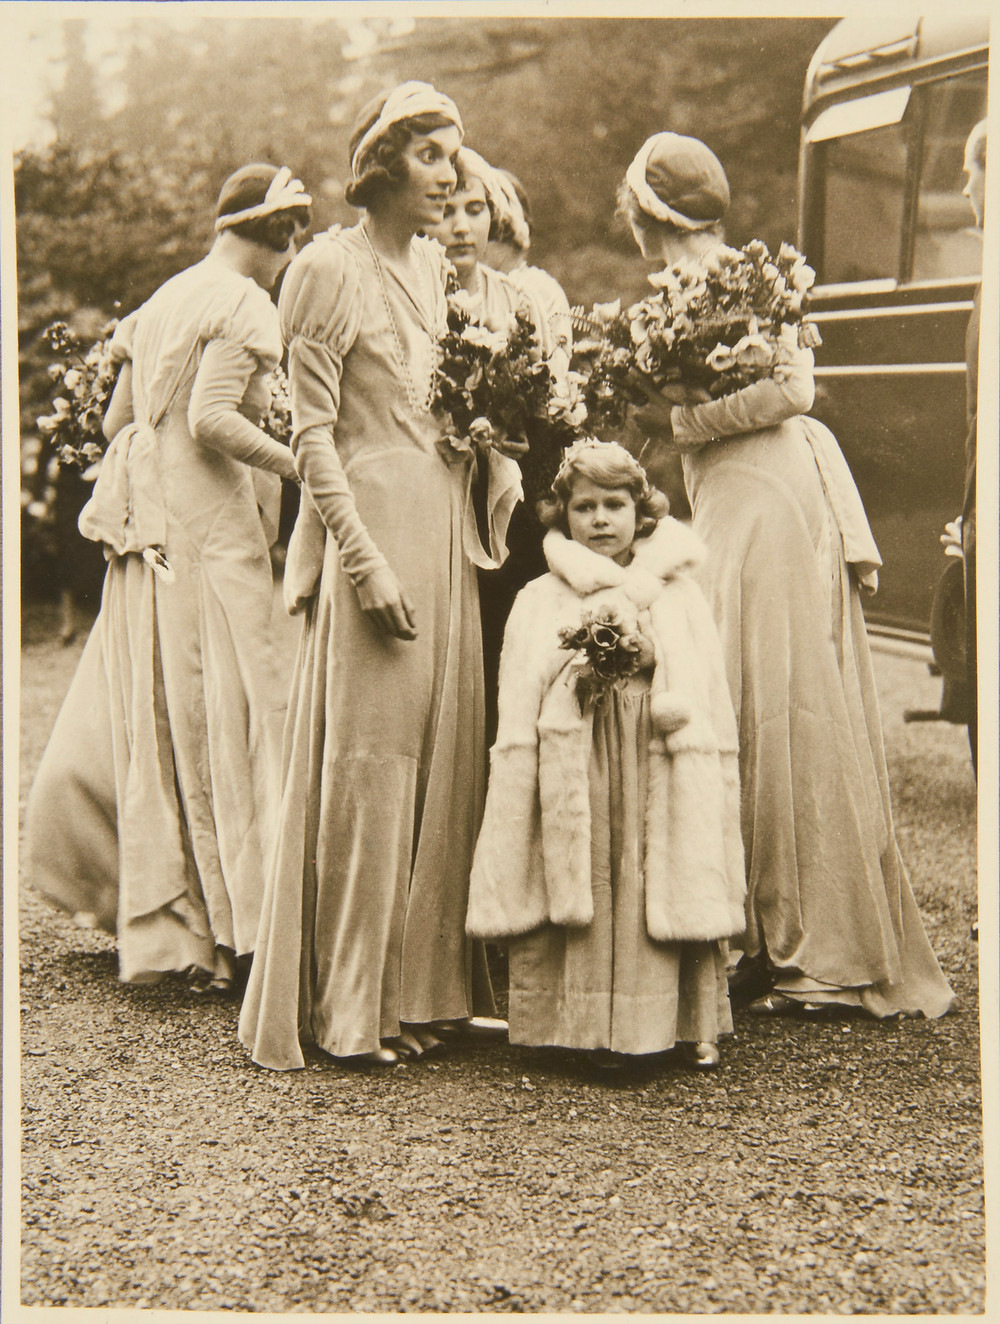 Princess Elizabeth & the bridesmaids 24 Oct 1931. Royal Collection Trust/(c) Her Majesty Queen Elizabeth II 2018